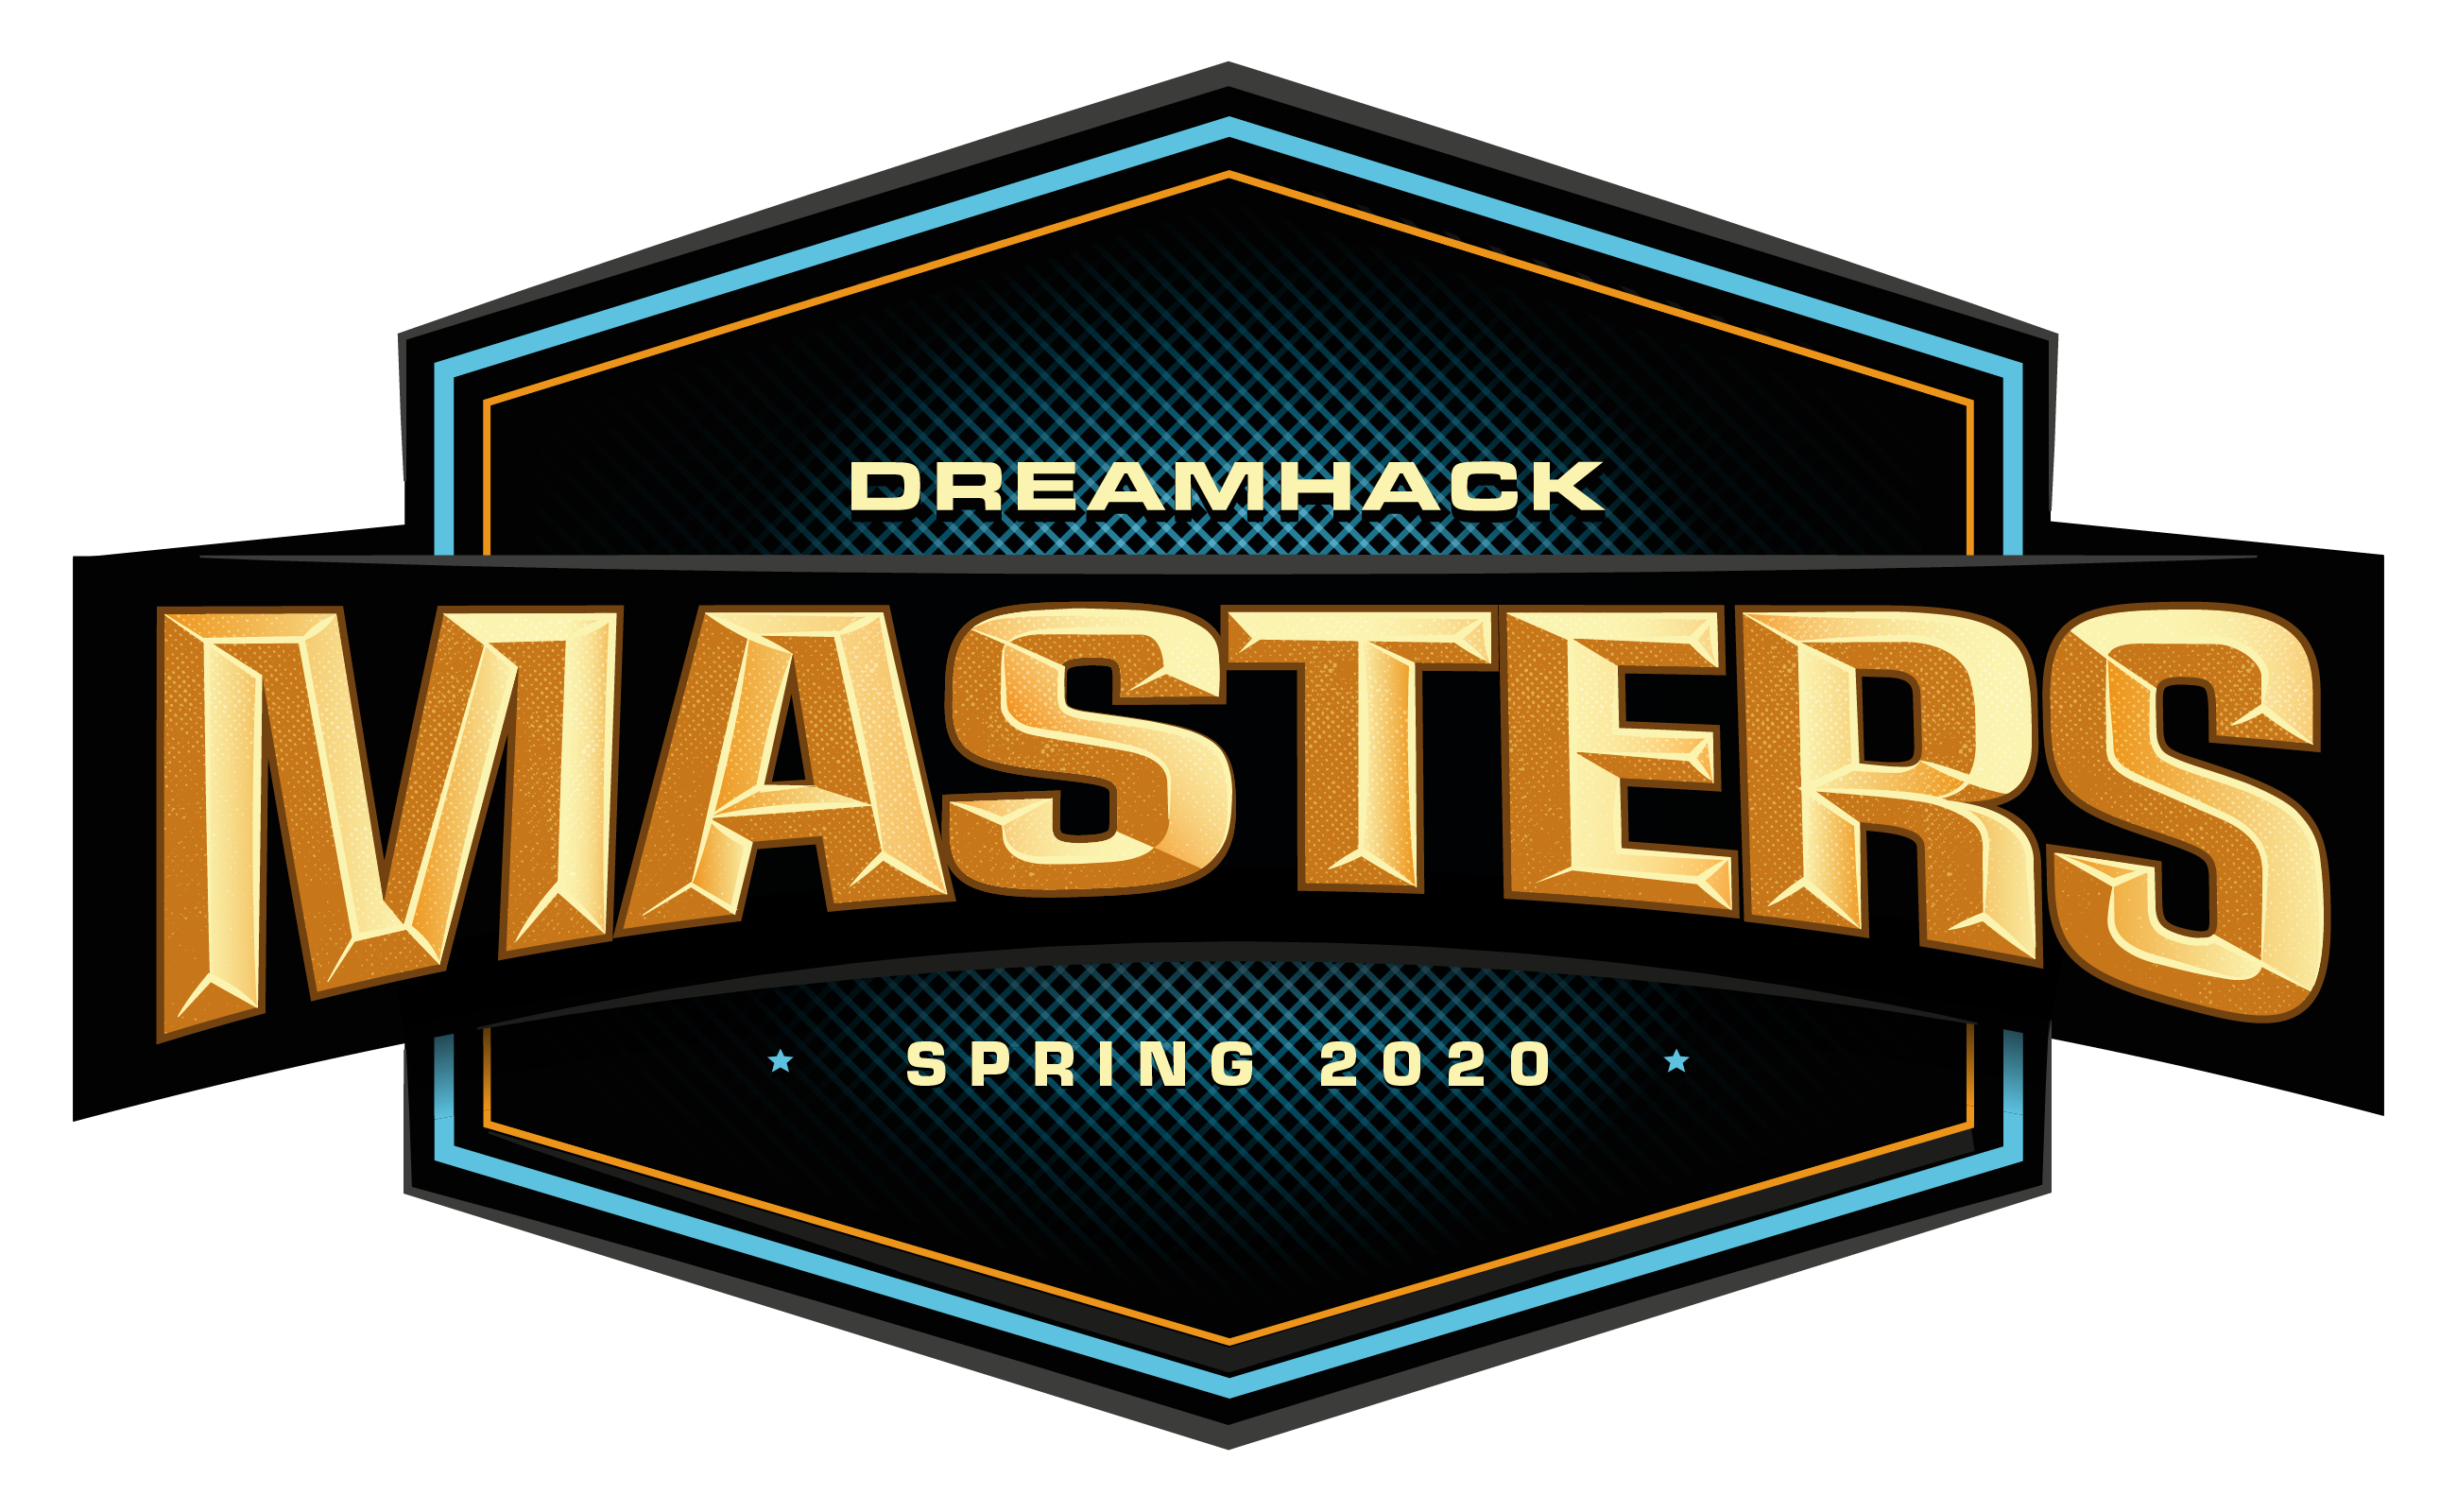 DreamHack Masters Oceanic Spring 2020  Tournament